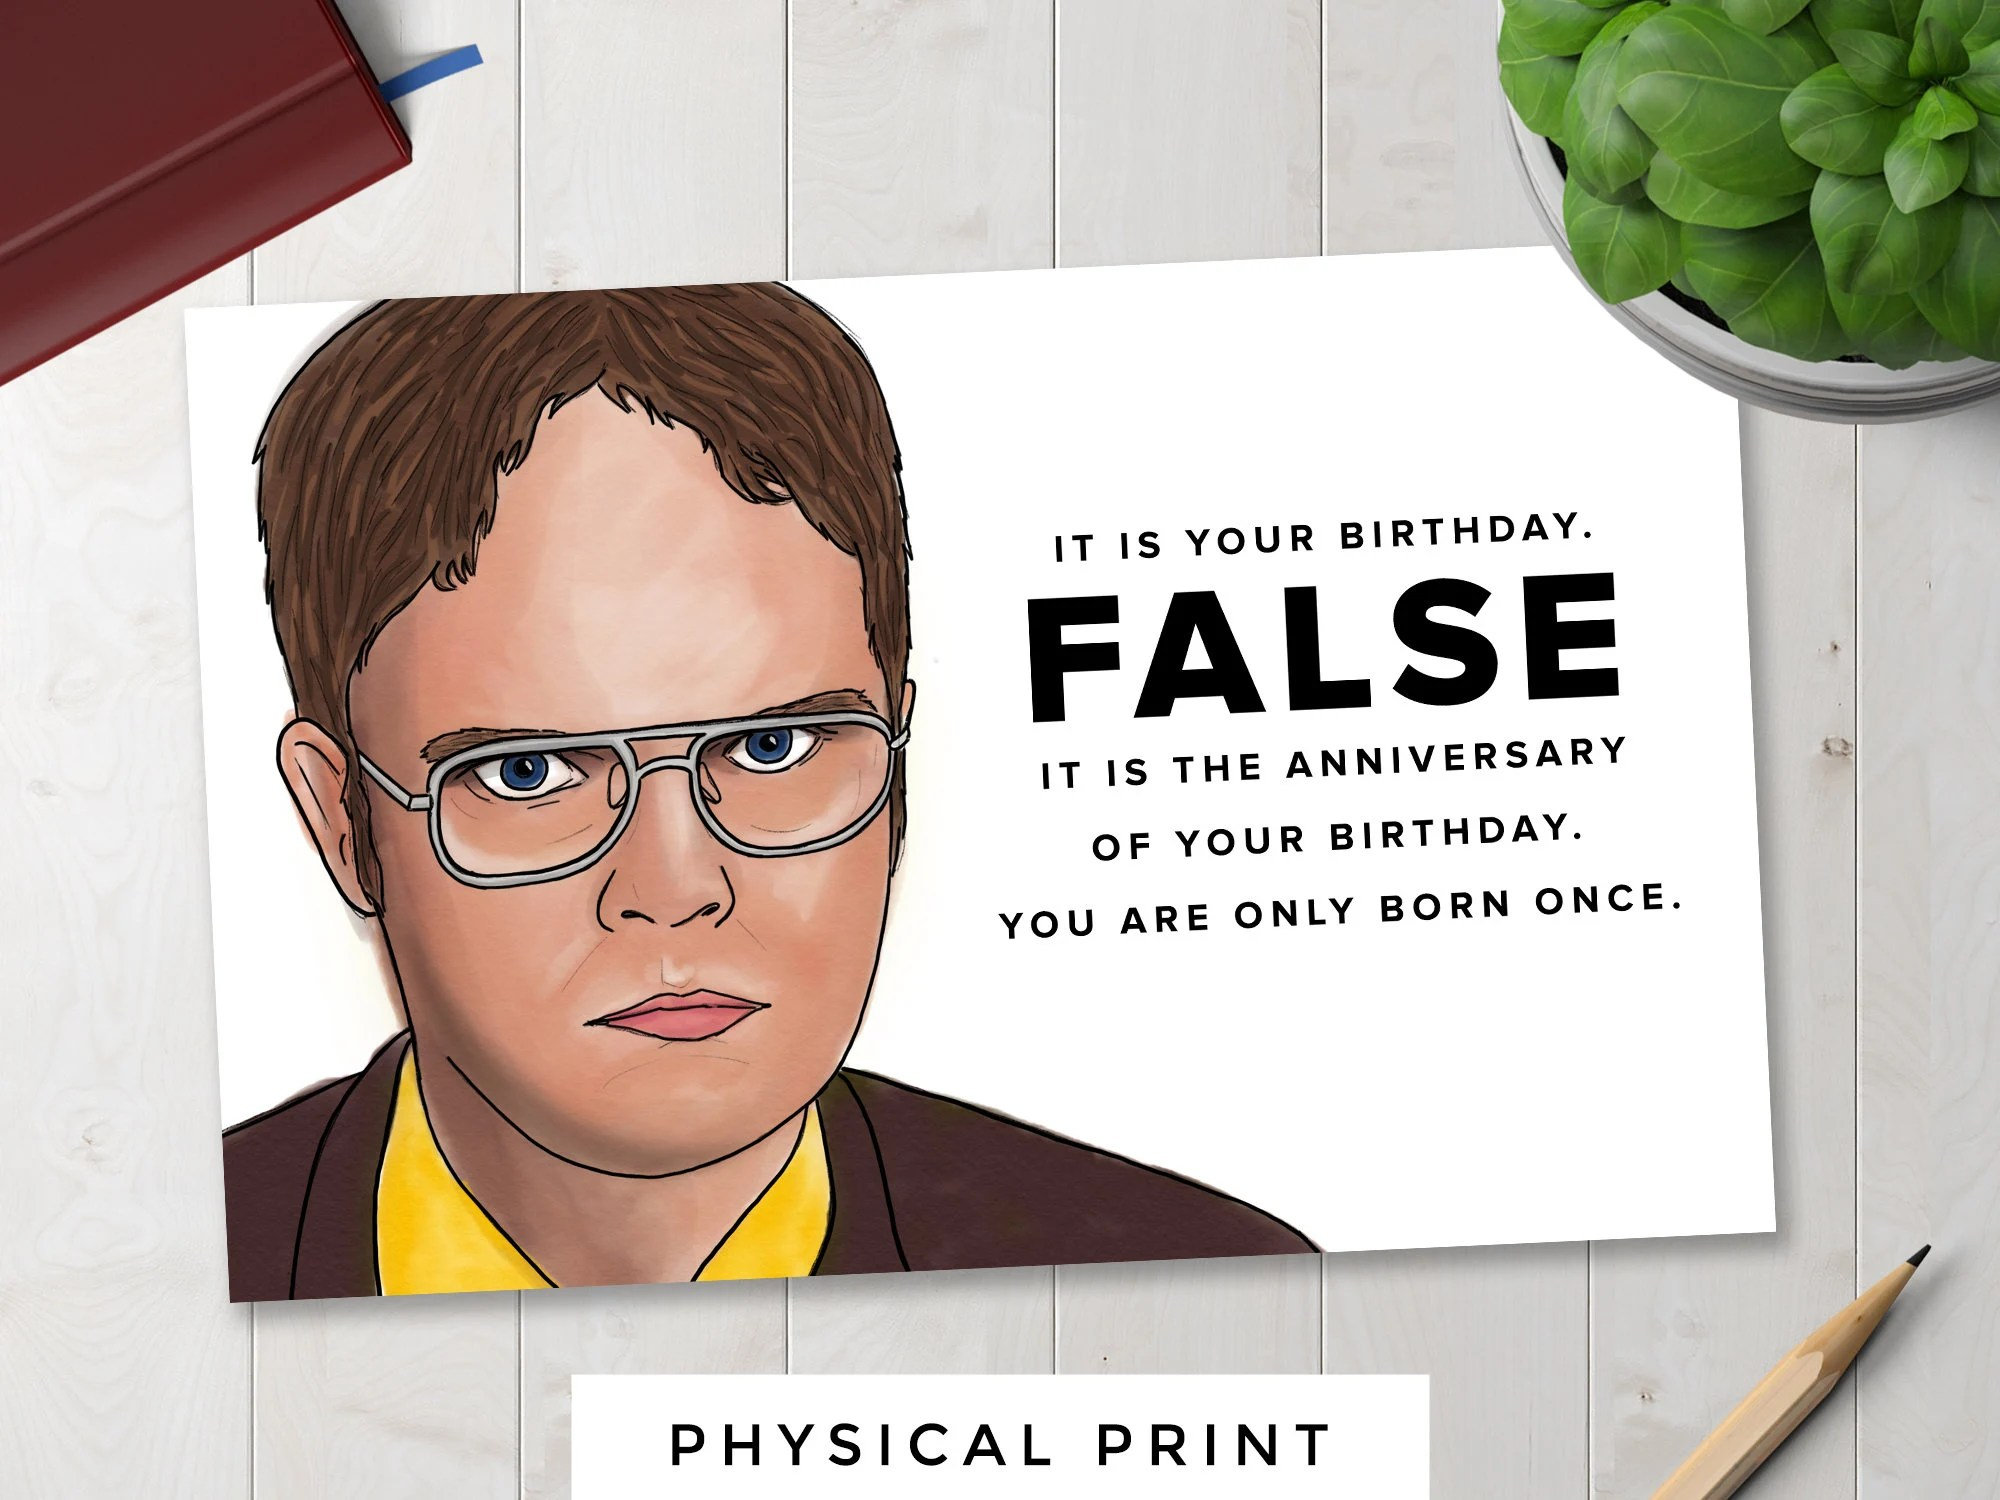 The Office Dwight Schrute False Birthday Card Etsy